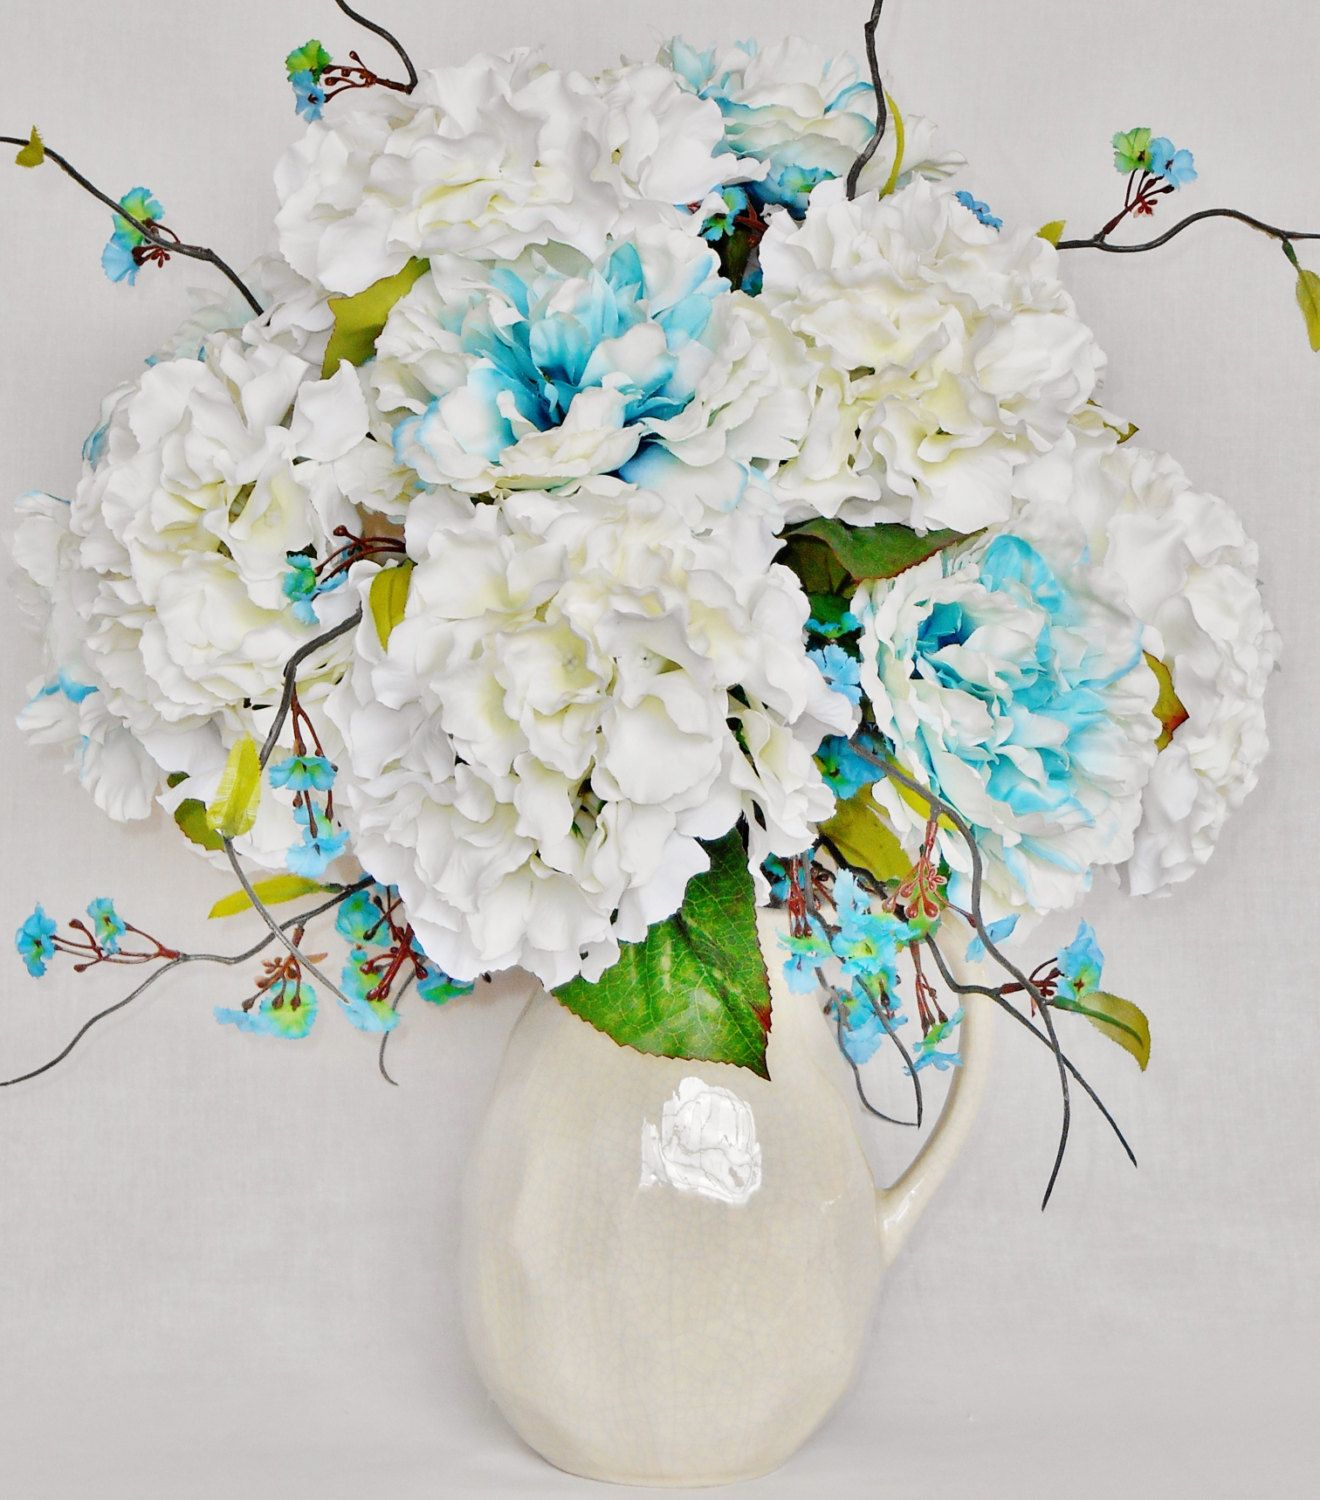 Artificial Flower Arrangement Turquoise White Peonies White